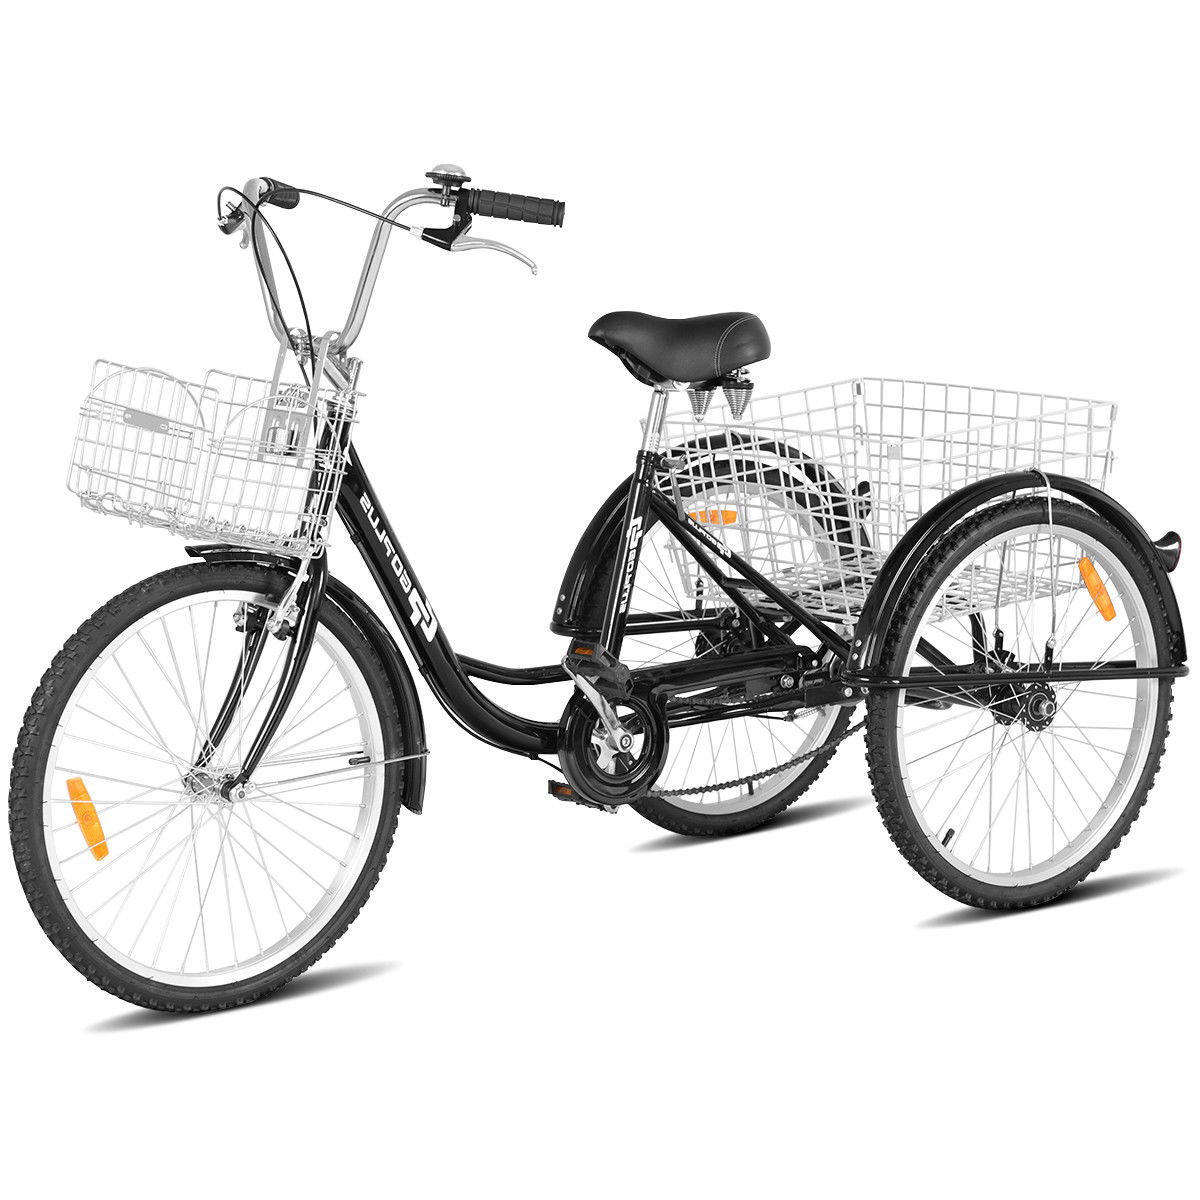 Goplus 24'' Single Speed 3-wheel Bicycle Adult Tricycle Seat Height Adjustable w/ Bell